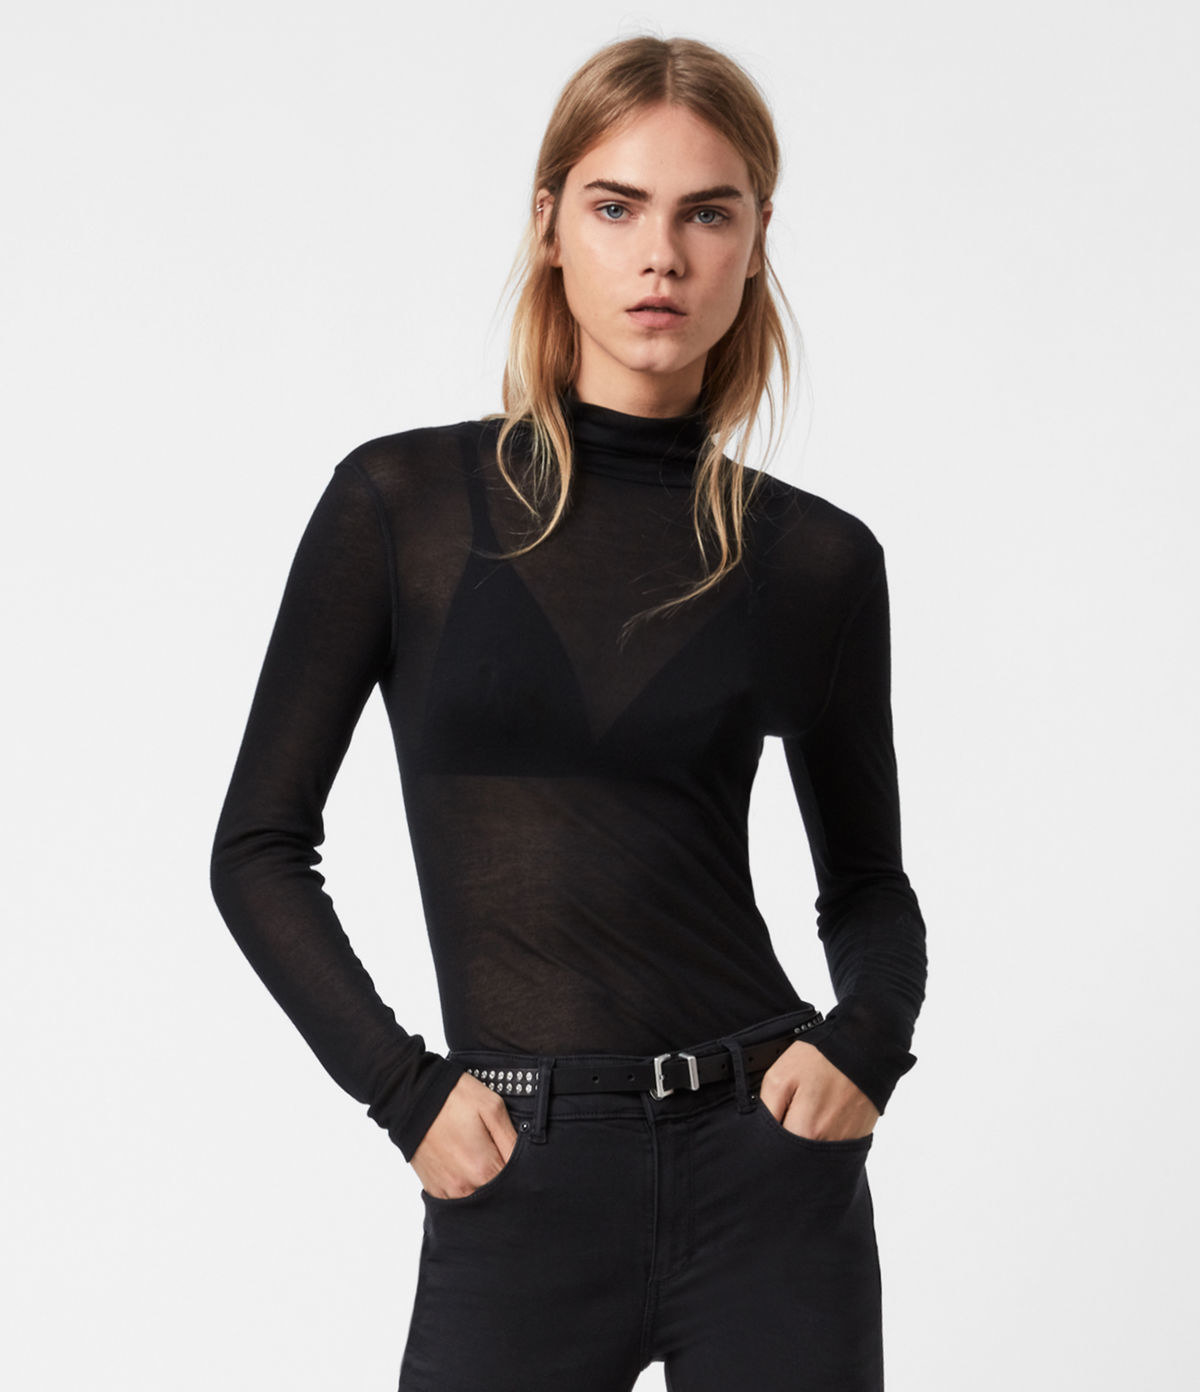 Model wearing black roll neck top